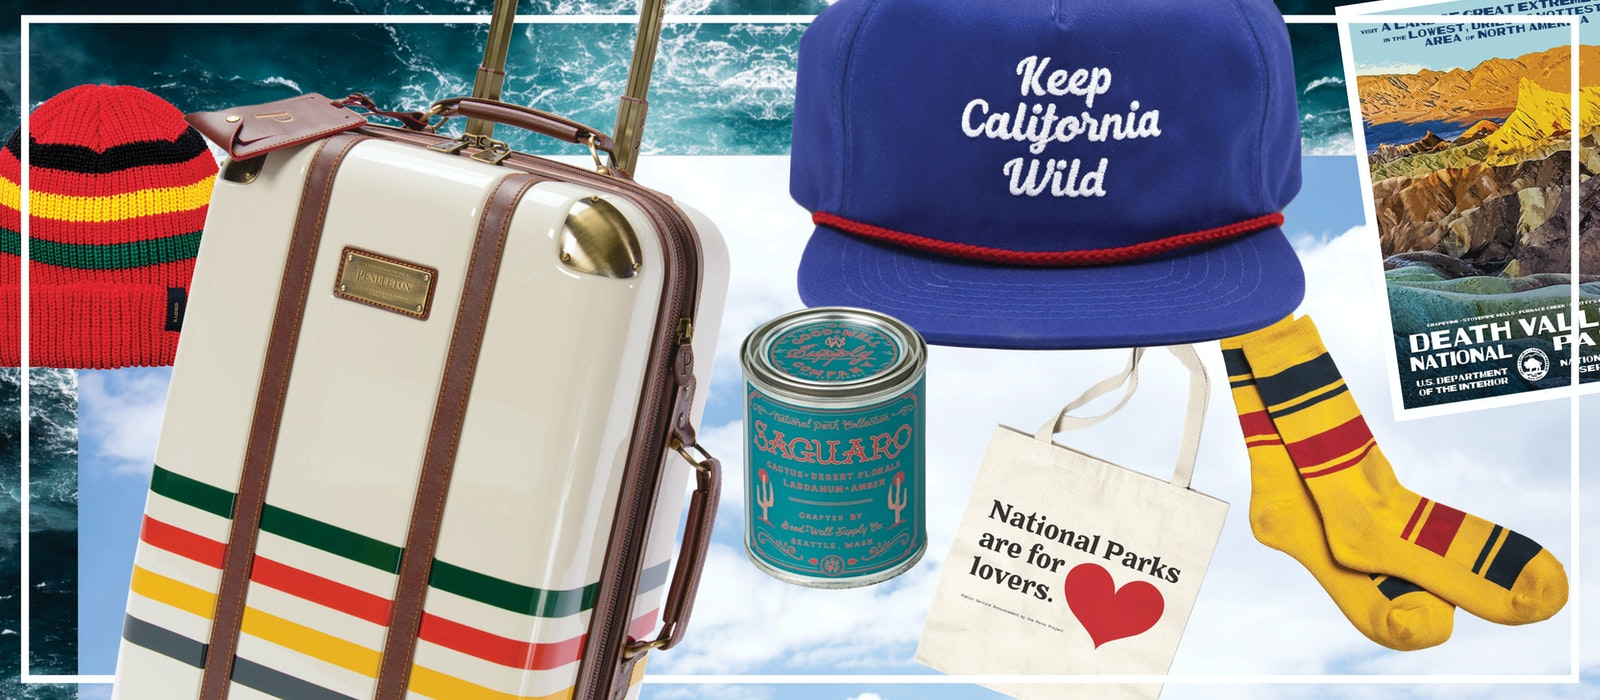 Sales from all of the items seen here help support national parks in the United States.